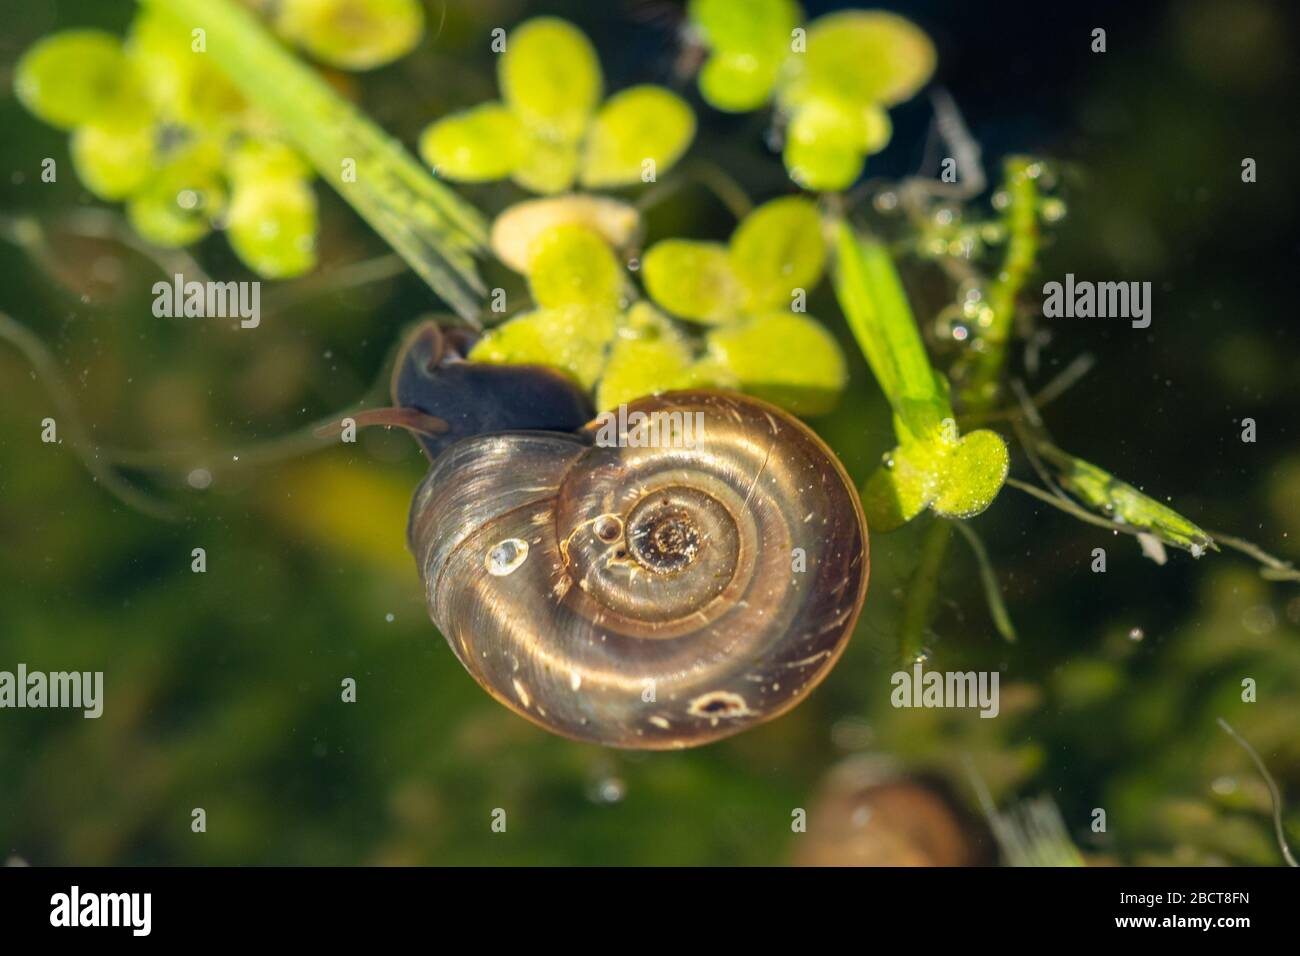 ramshorn-snail-planorbis-corneus-in-a-garden-pond-aquatic-uk-wildlife-2BCT8FN.jpg